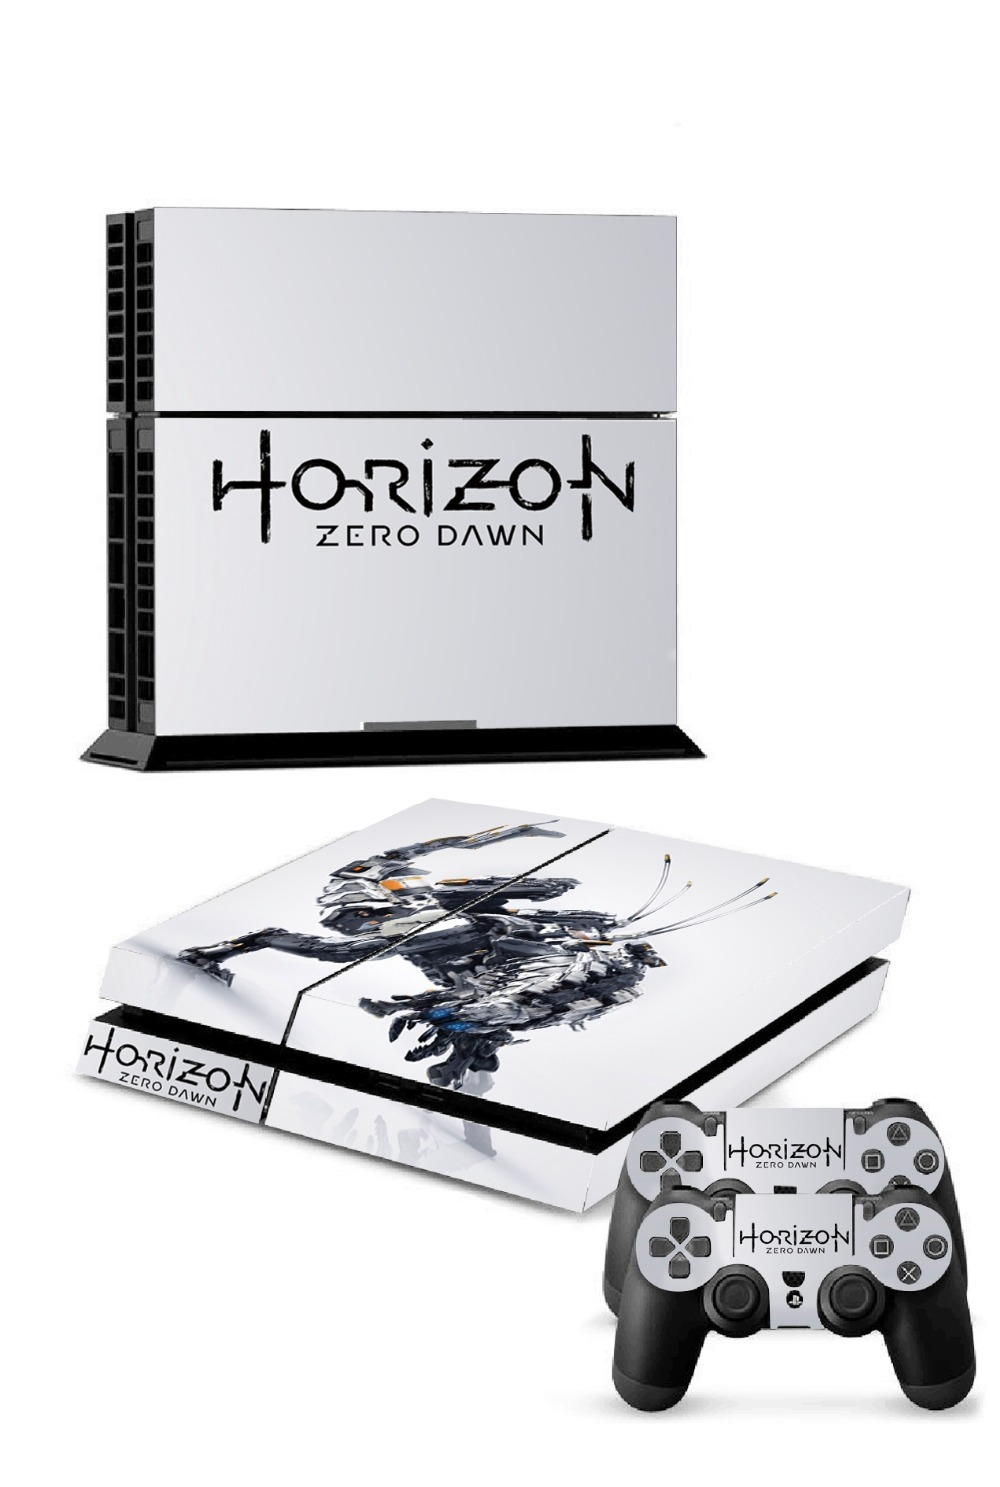 Horizon Zero Dawn Ps4 Skin Decal Sticker For Playstation4 Console Sony Playstation 4 Reg 3 And 2 Controller Skins In Stickers From Consumer Electronics On Alibaba